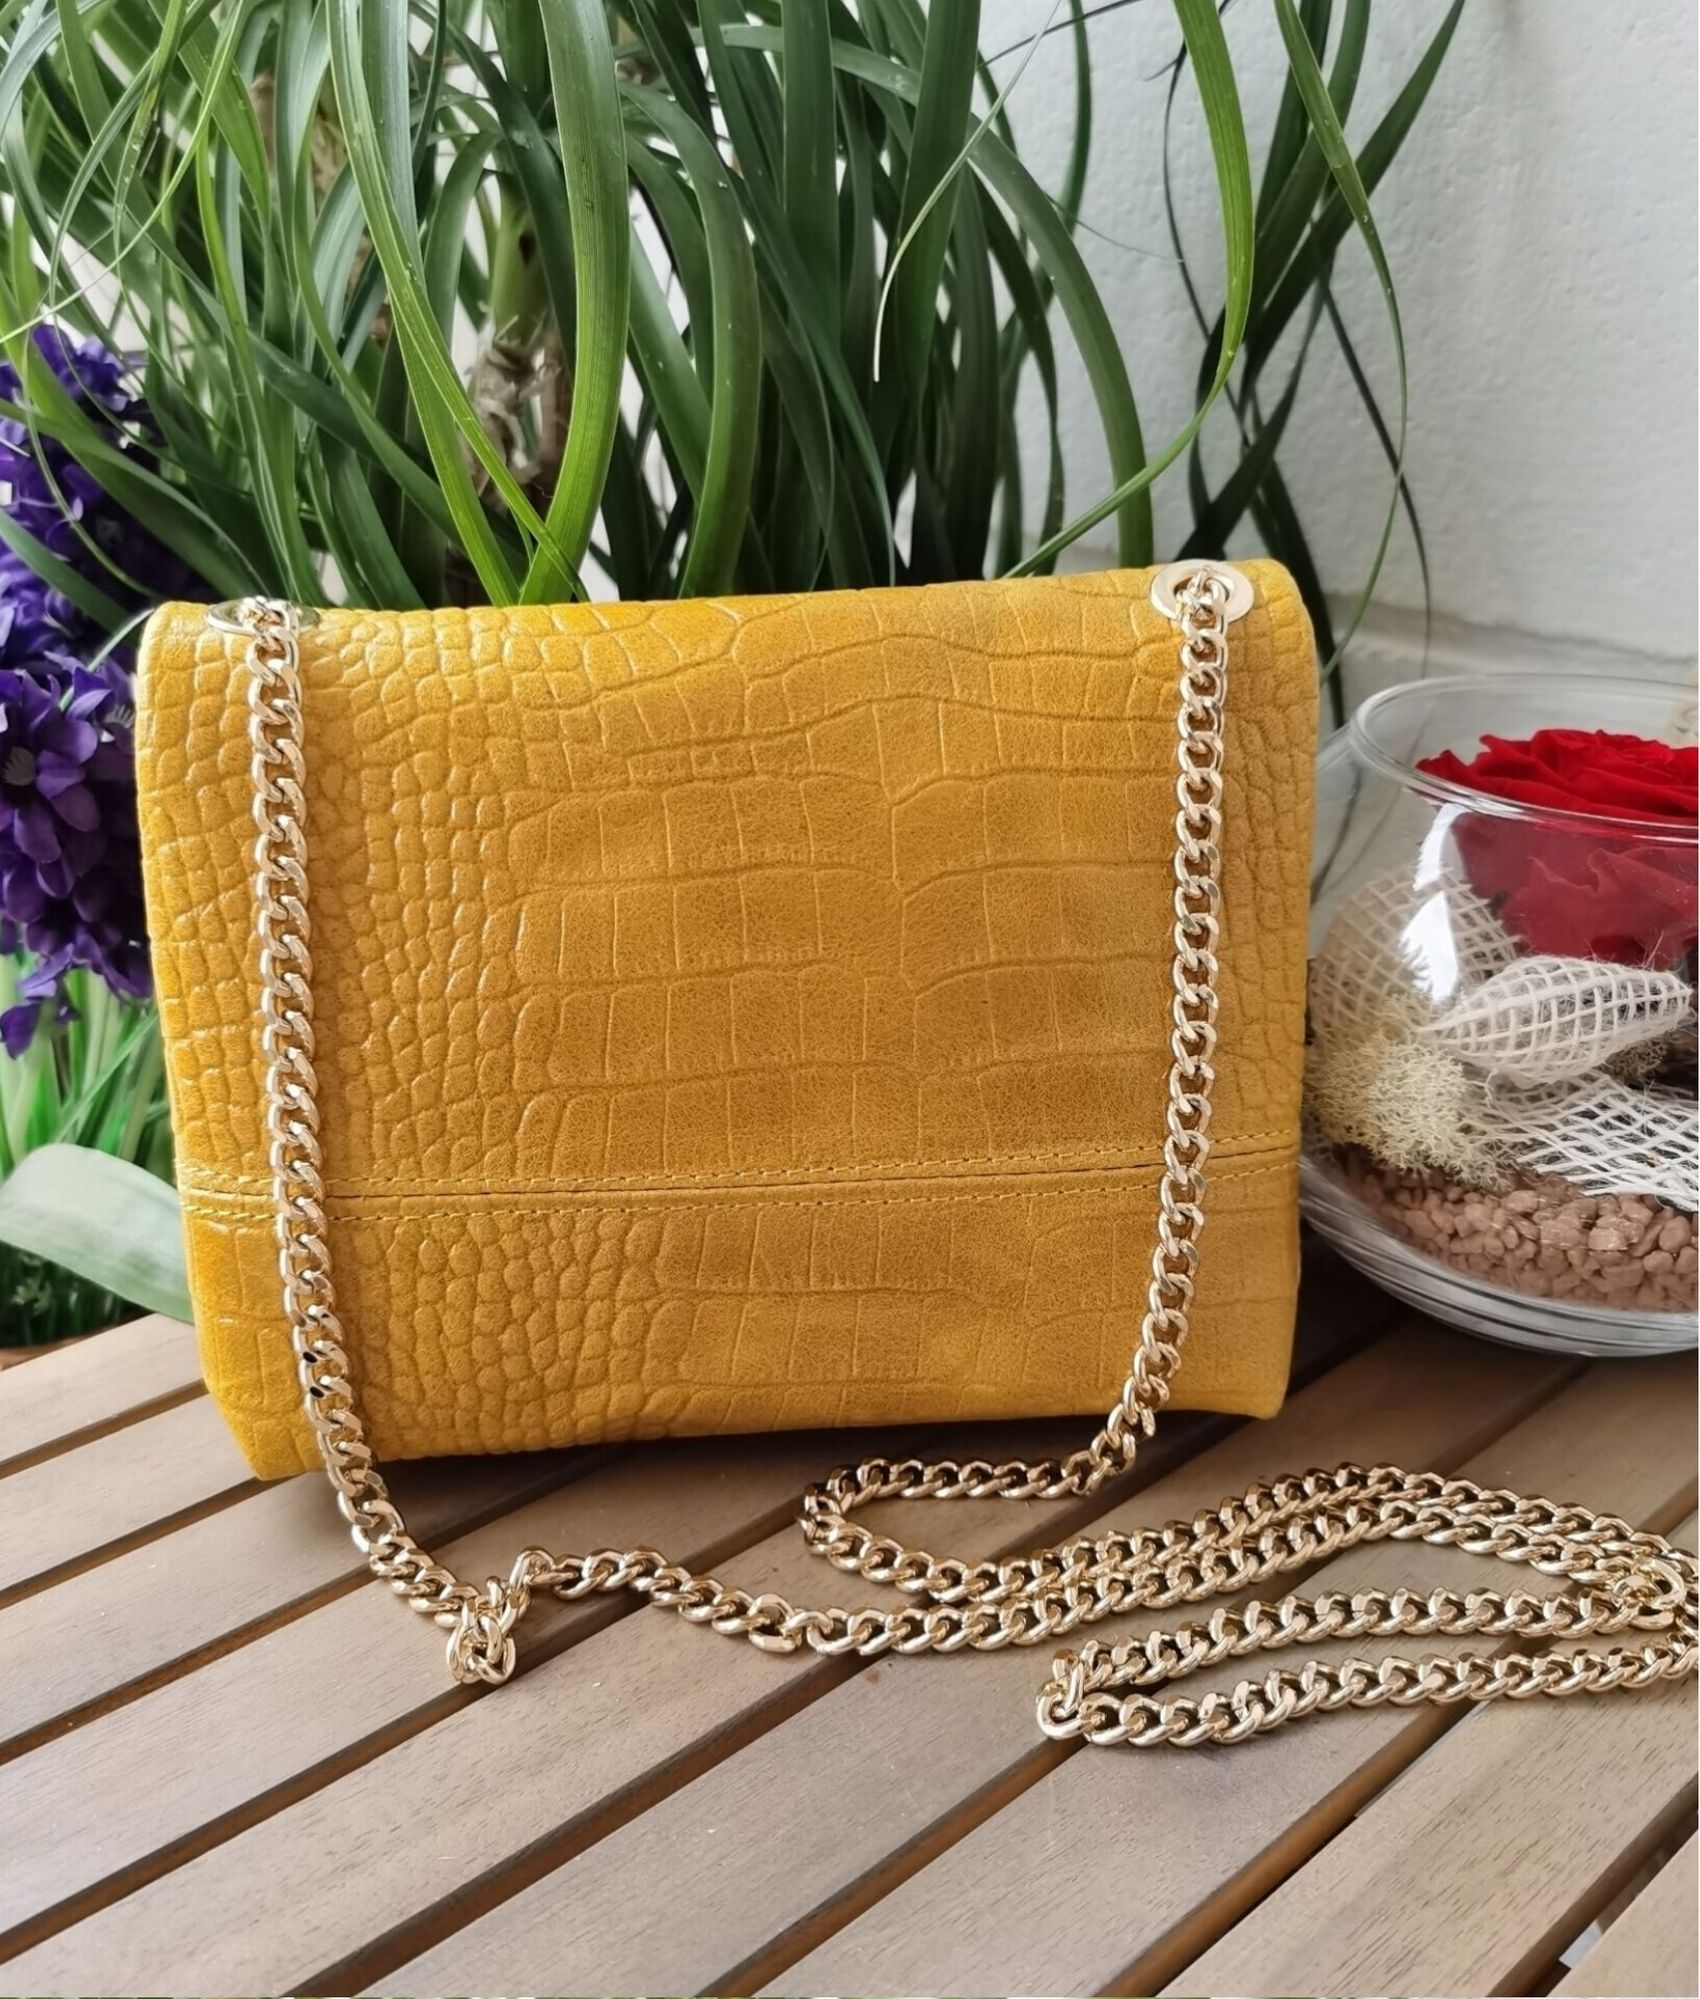 Leather bag Annabella - yellow